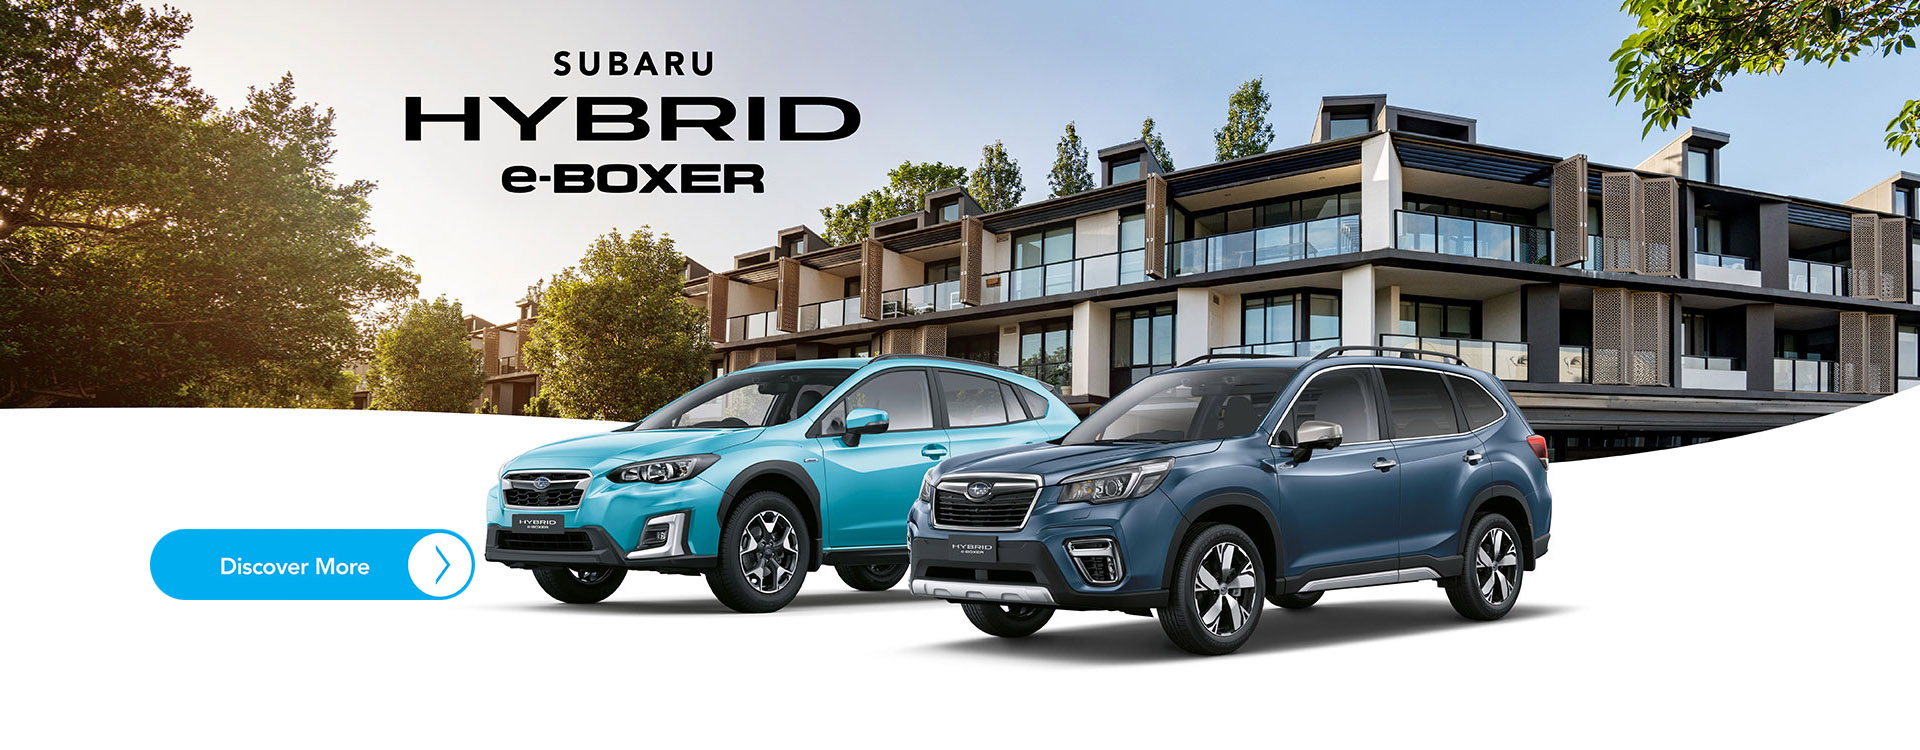 Subaru Hybrid e-Boxer now available in XV and Forester models